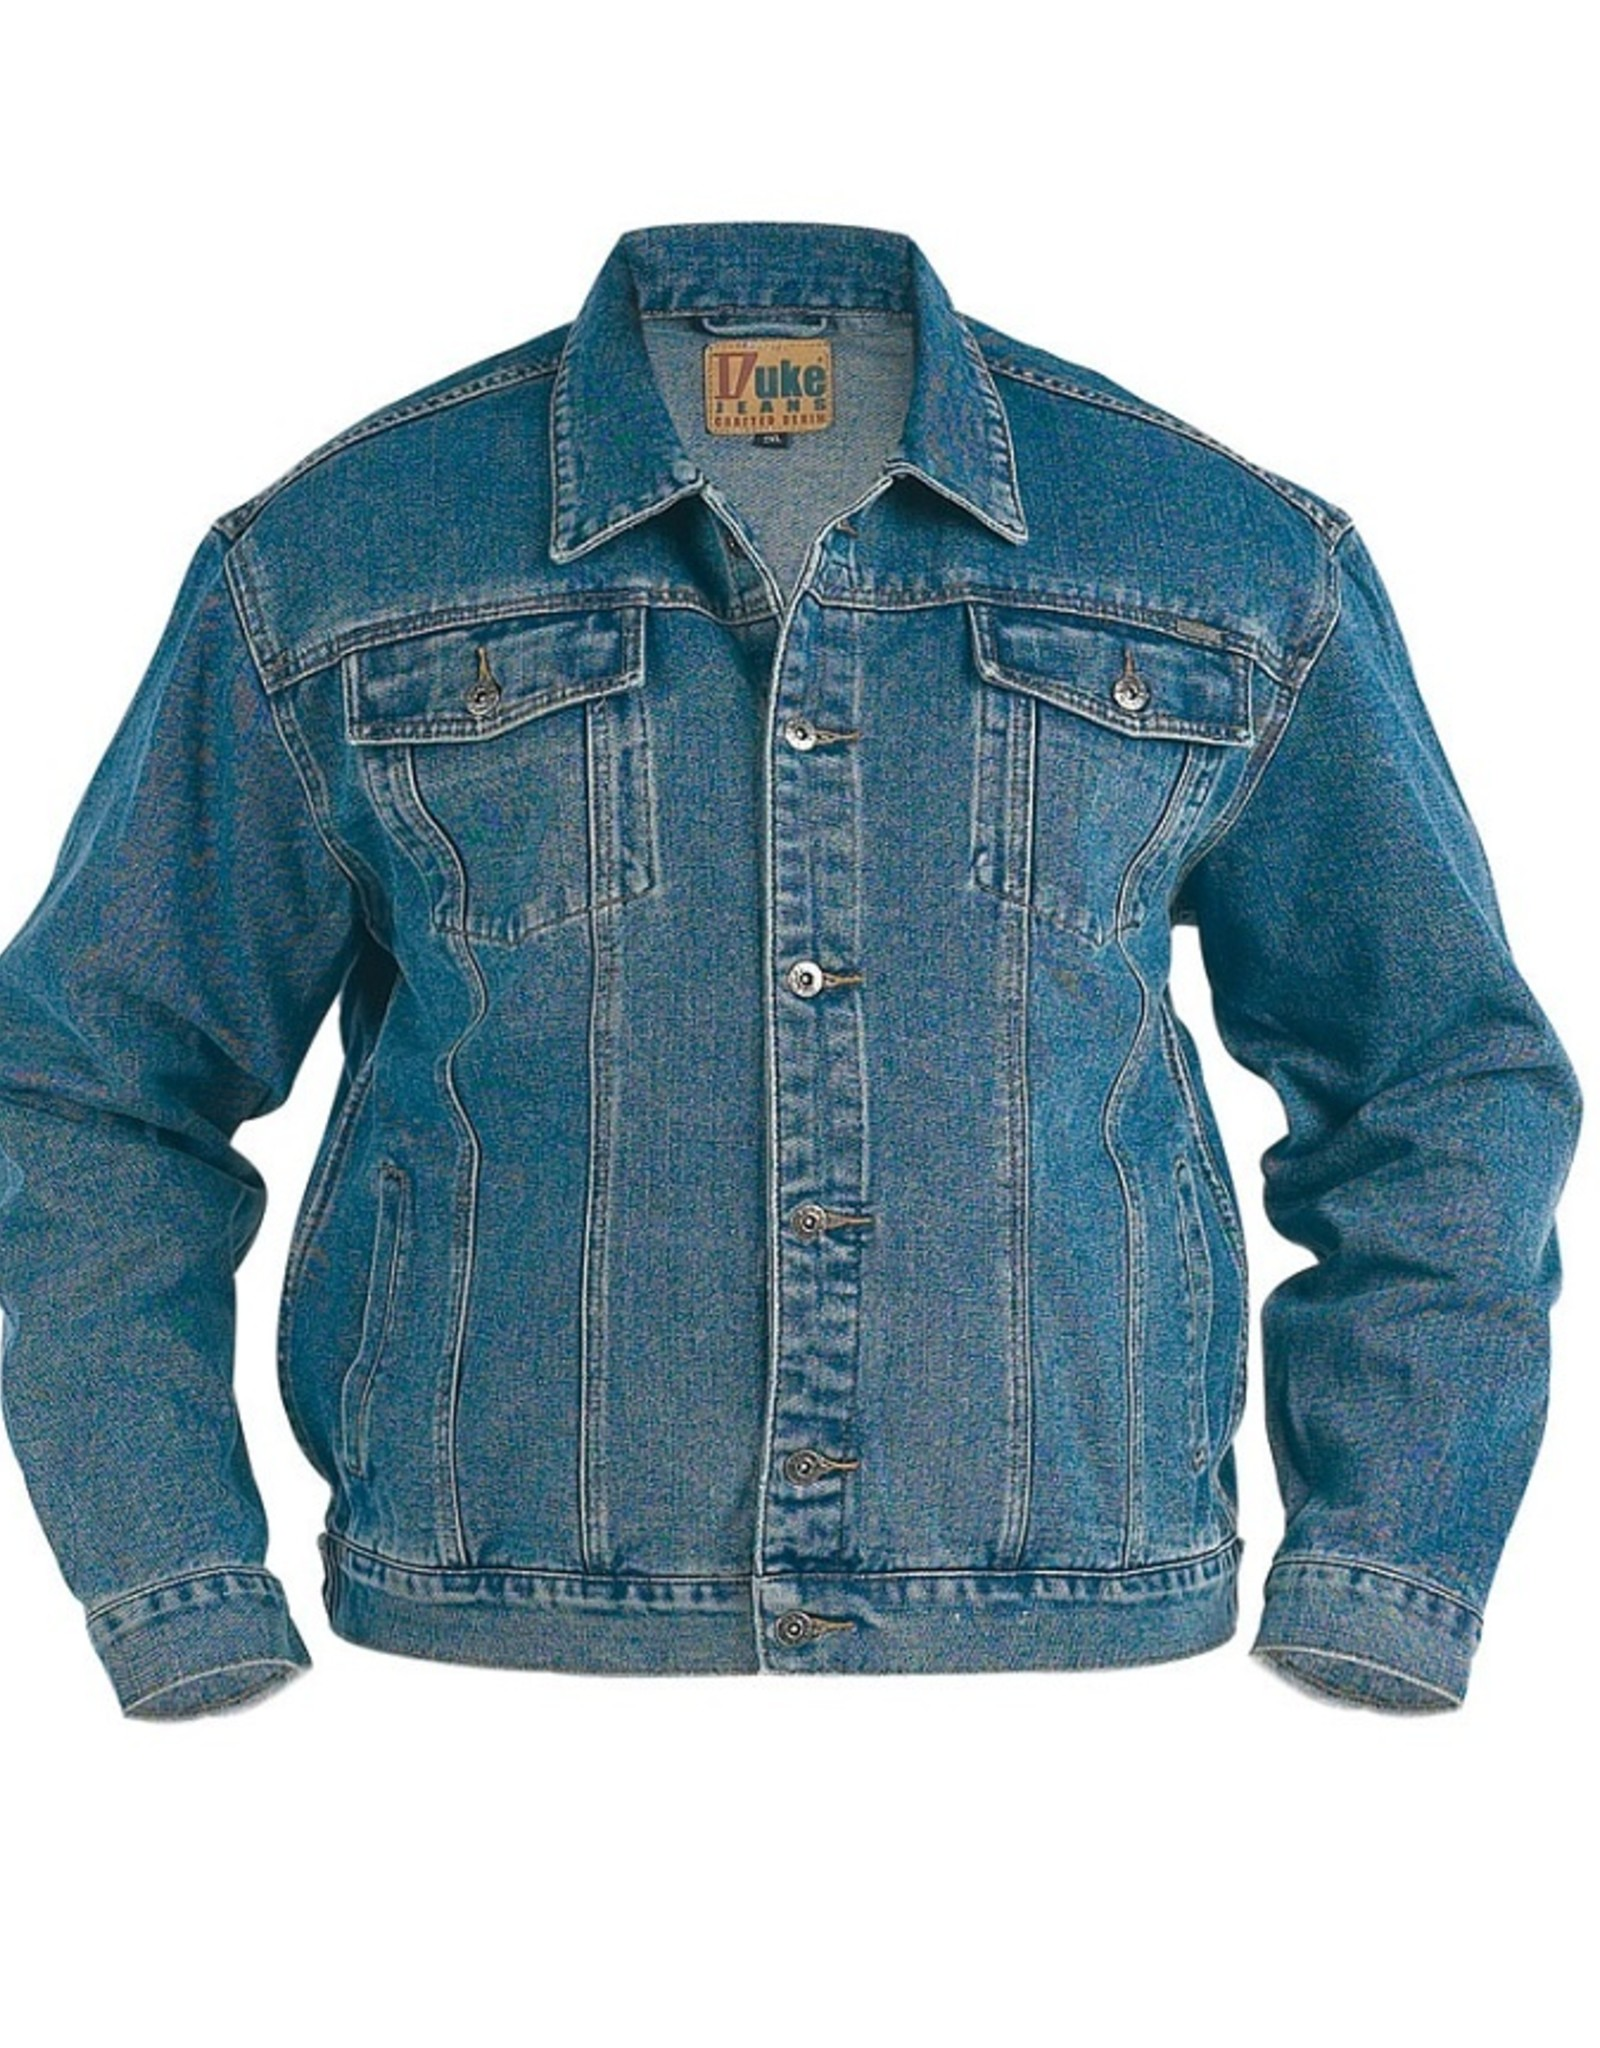 Duke London SPIJKERJACK denim 'Trucker' zwart